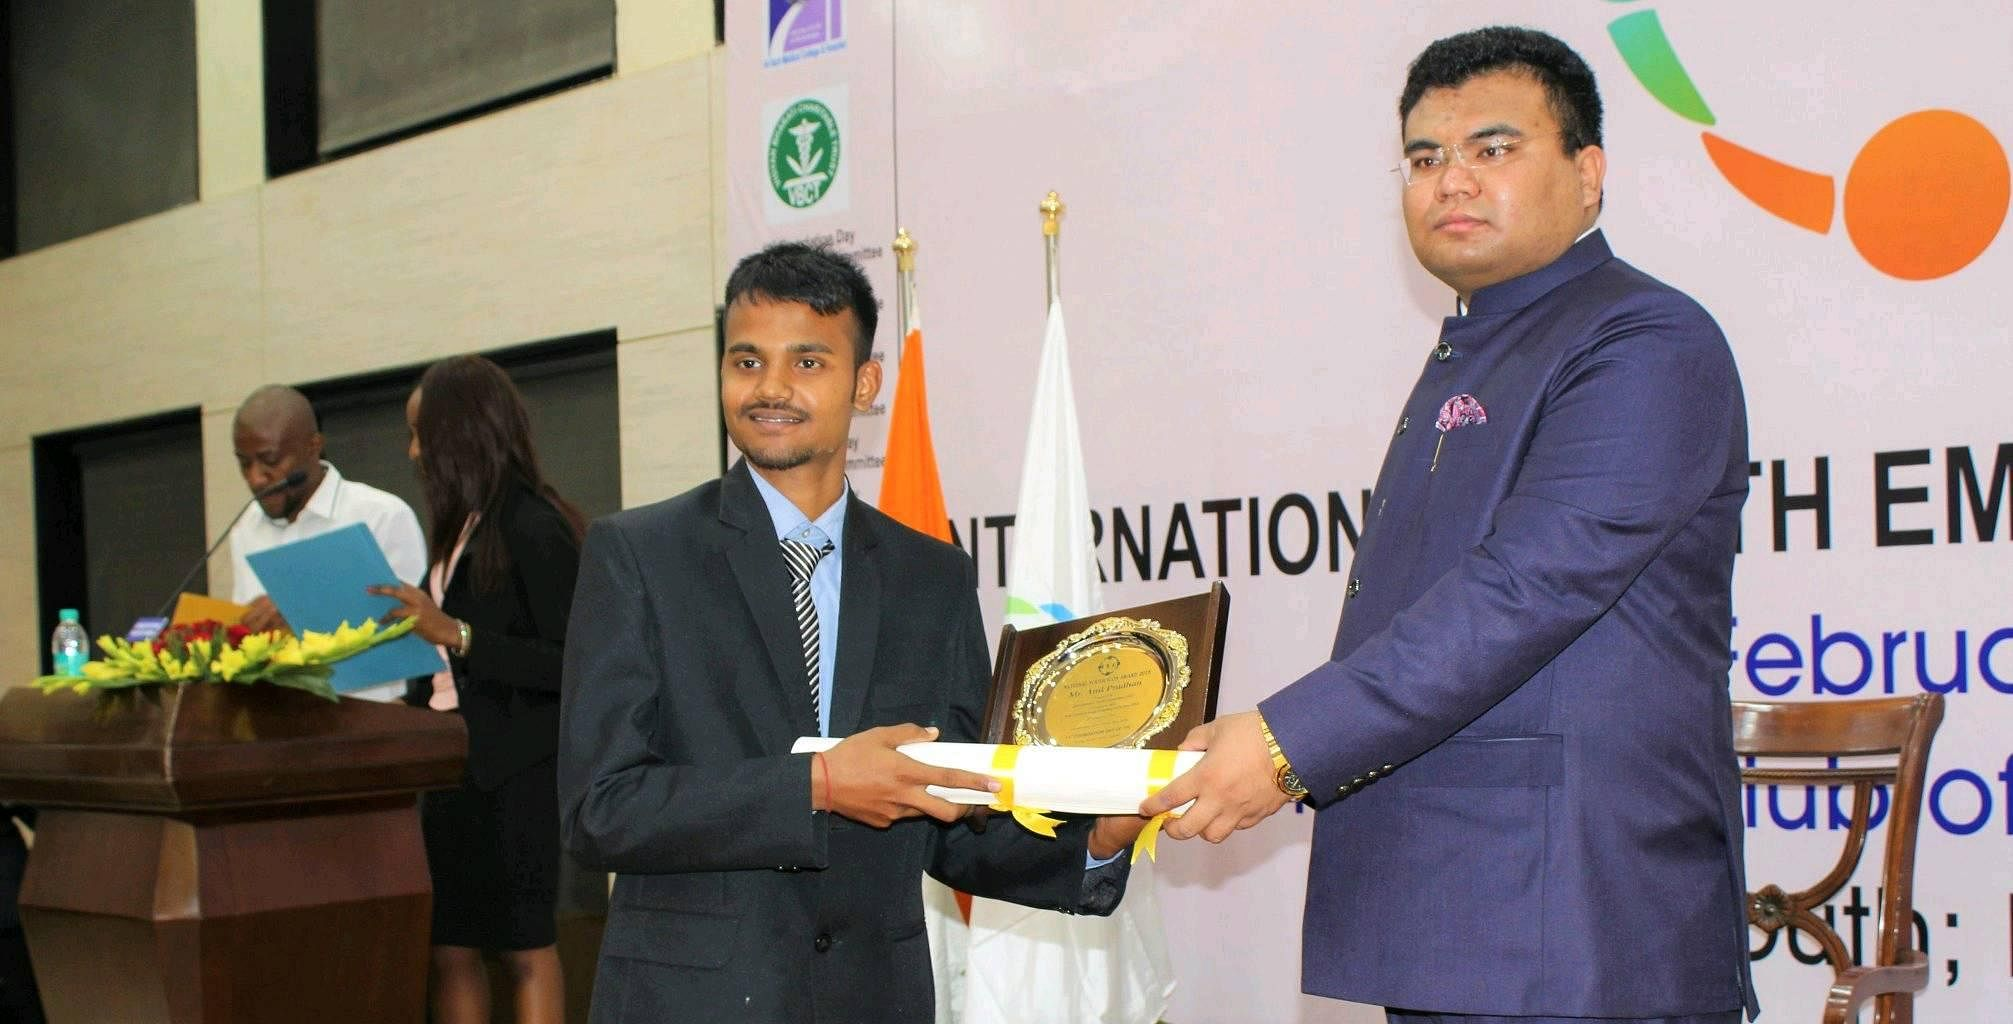 Anil Pradhan receiving the 2018 National Youth Icon Award. (Source: Facebook)